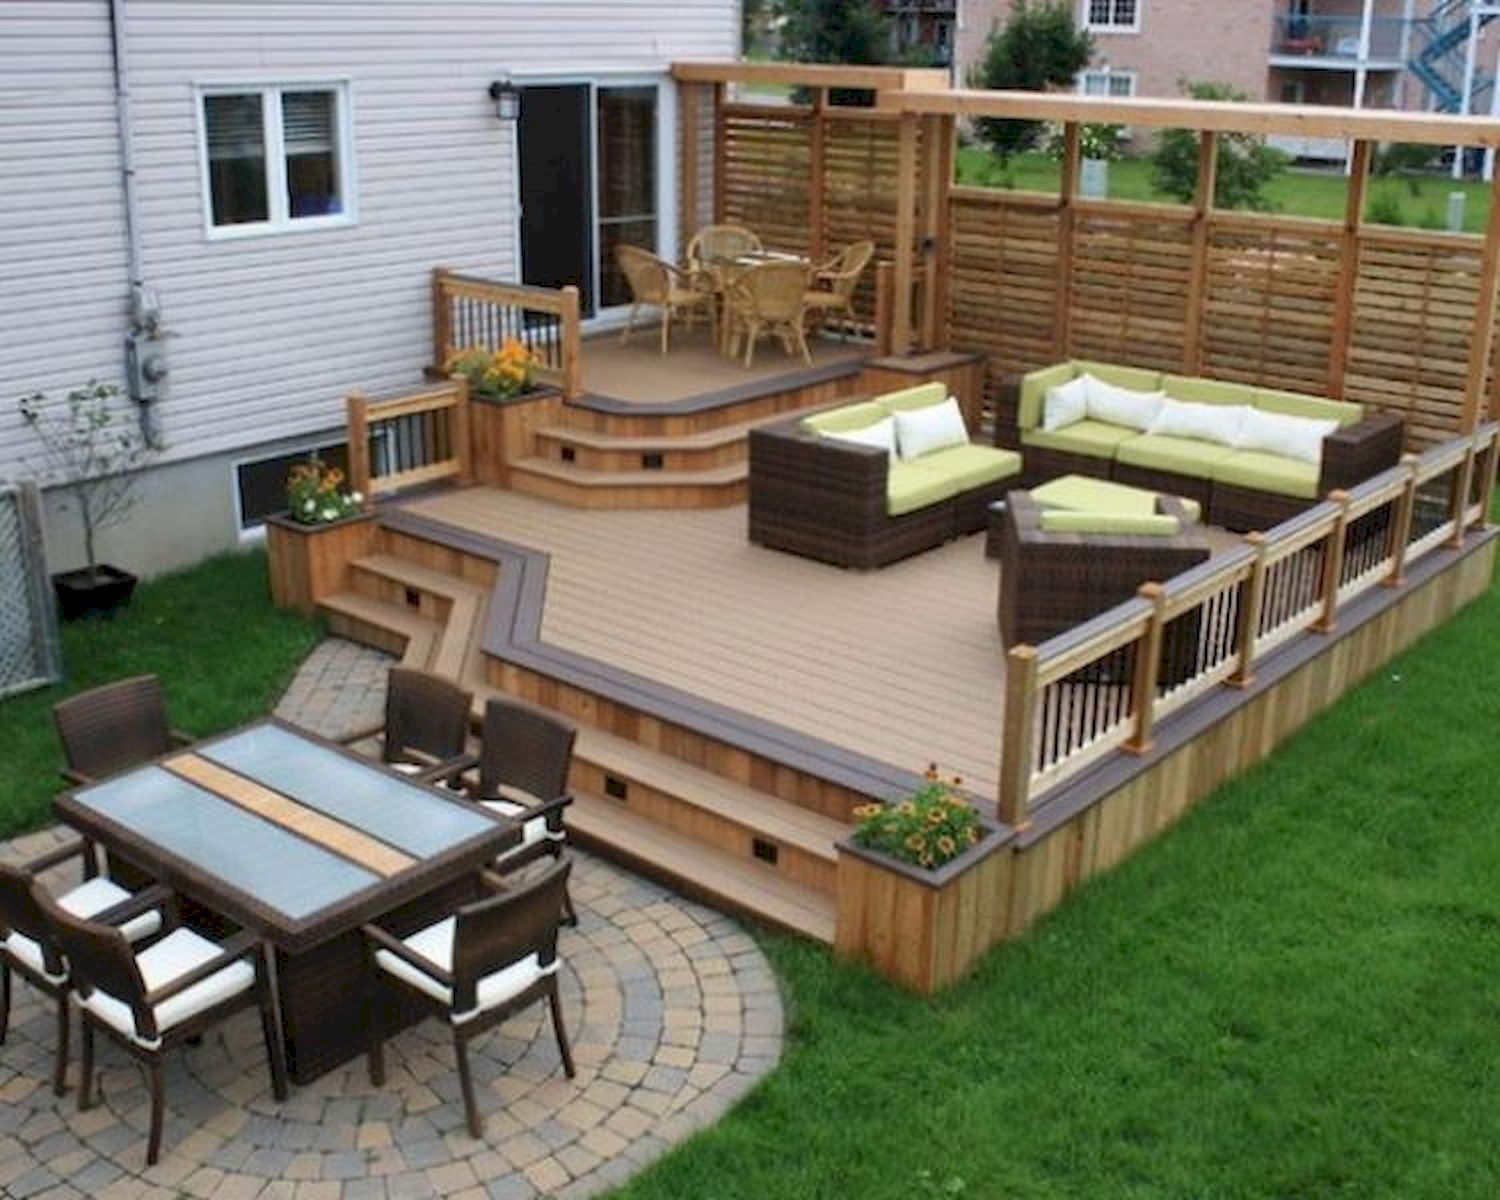 The Best Wooden Deck Design Ideas For Your Outdoors Patios 04 1